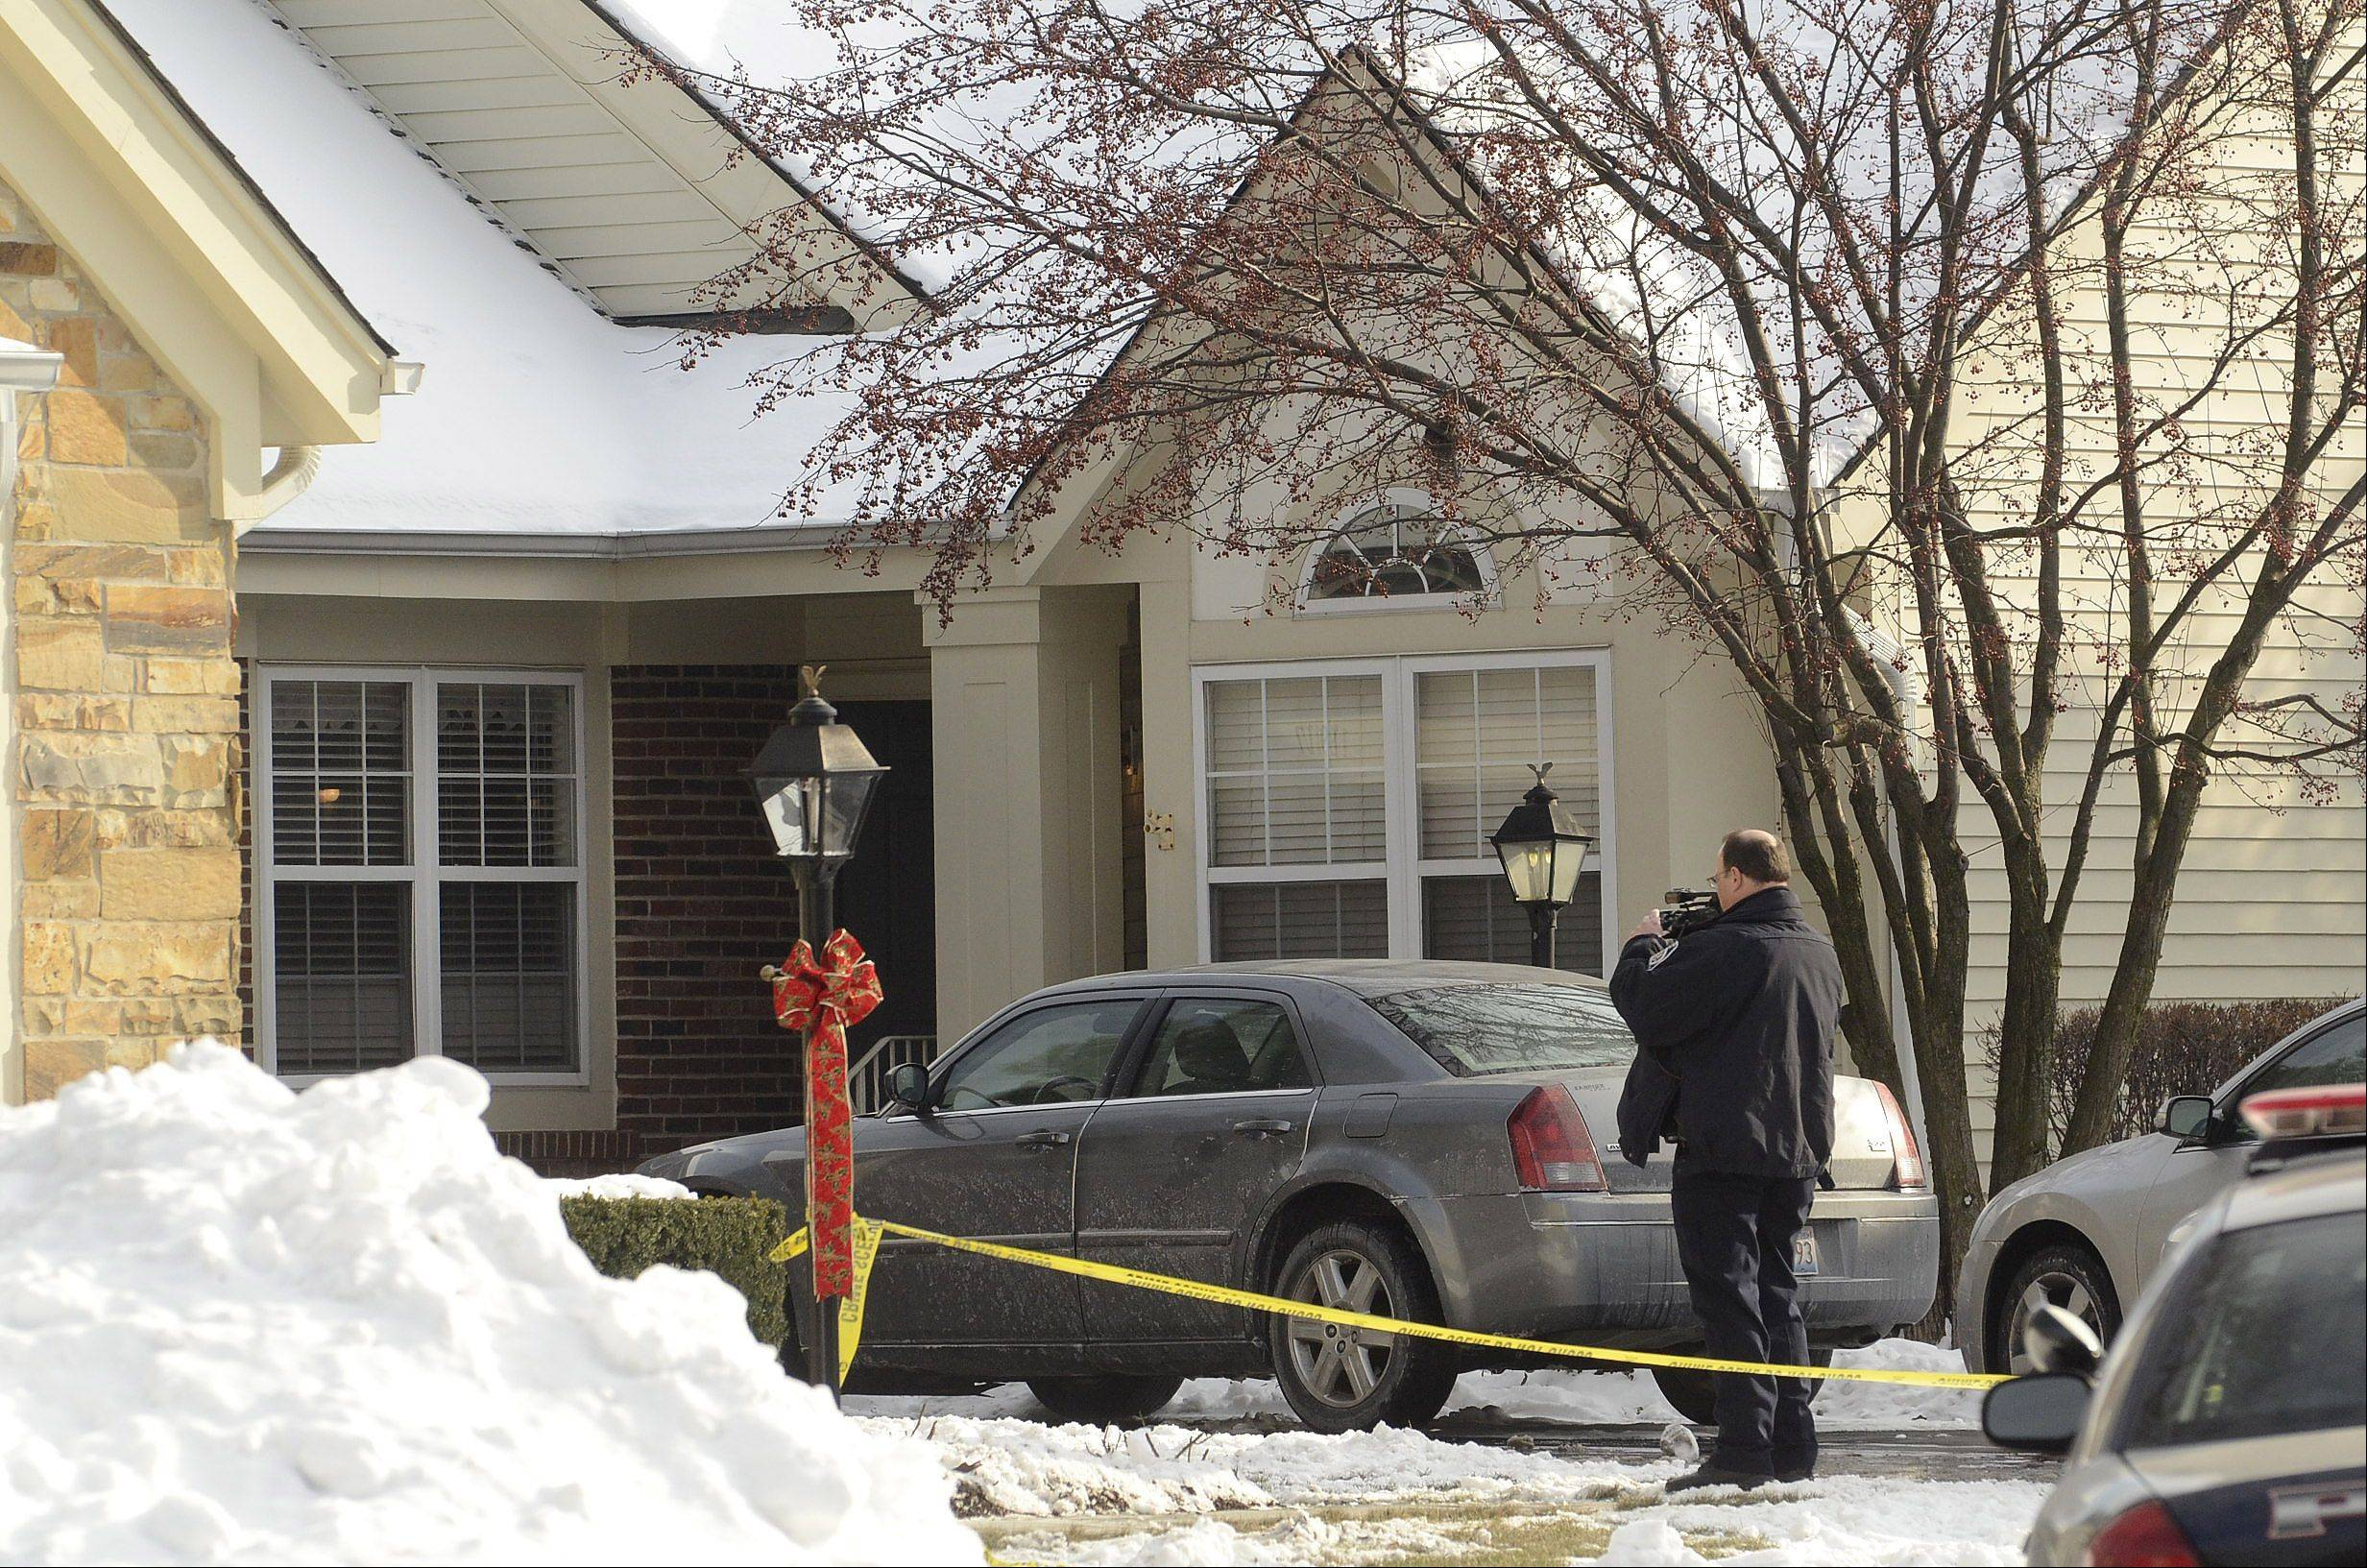 Bob Chwedyk/bchwedyk@dailyherald.com Police the investigate the shooting scene in Arlington Heights.